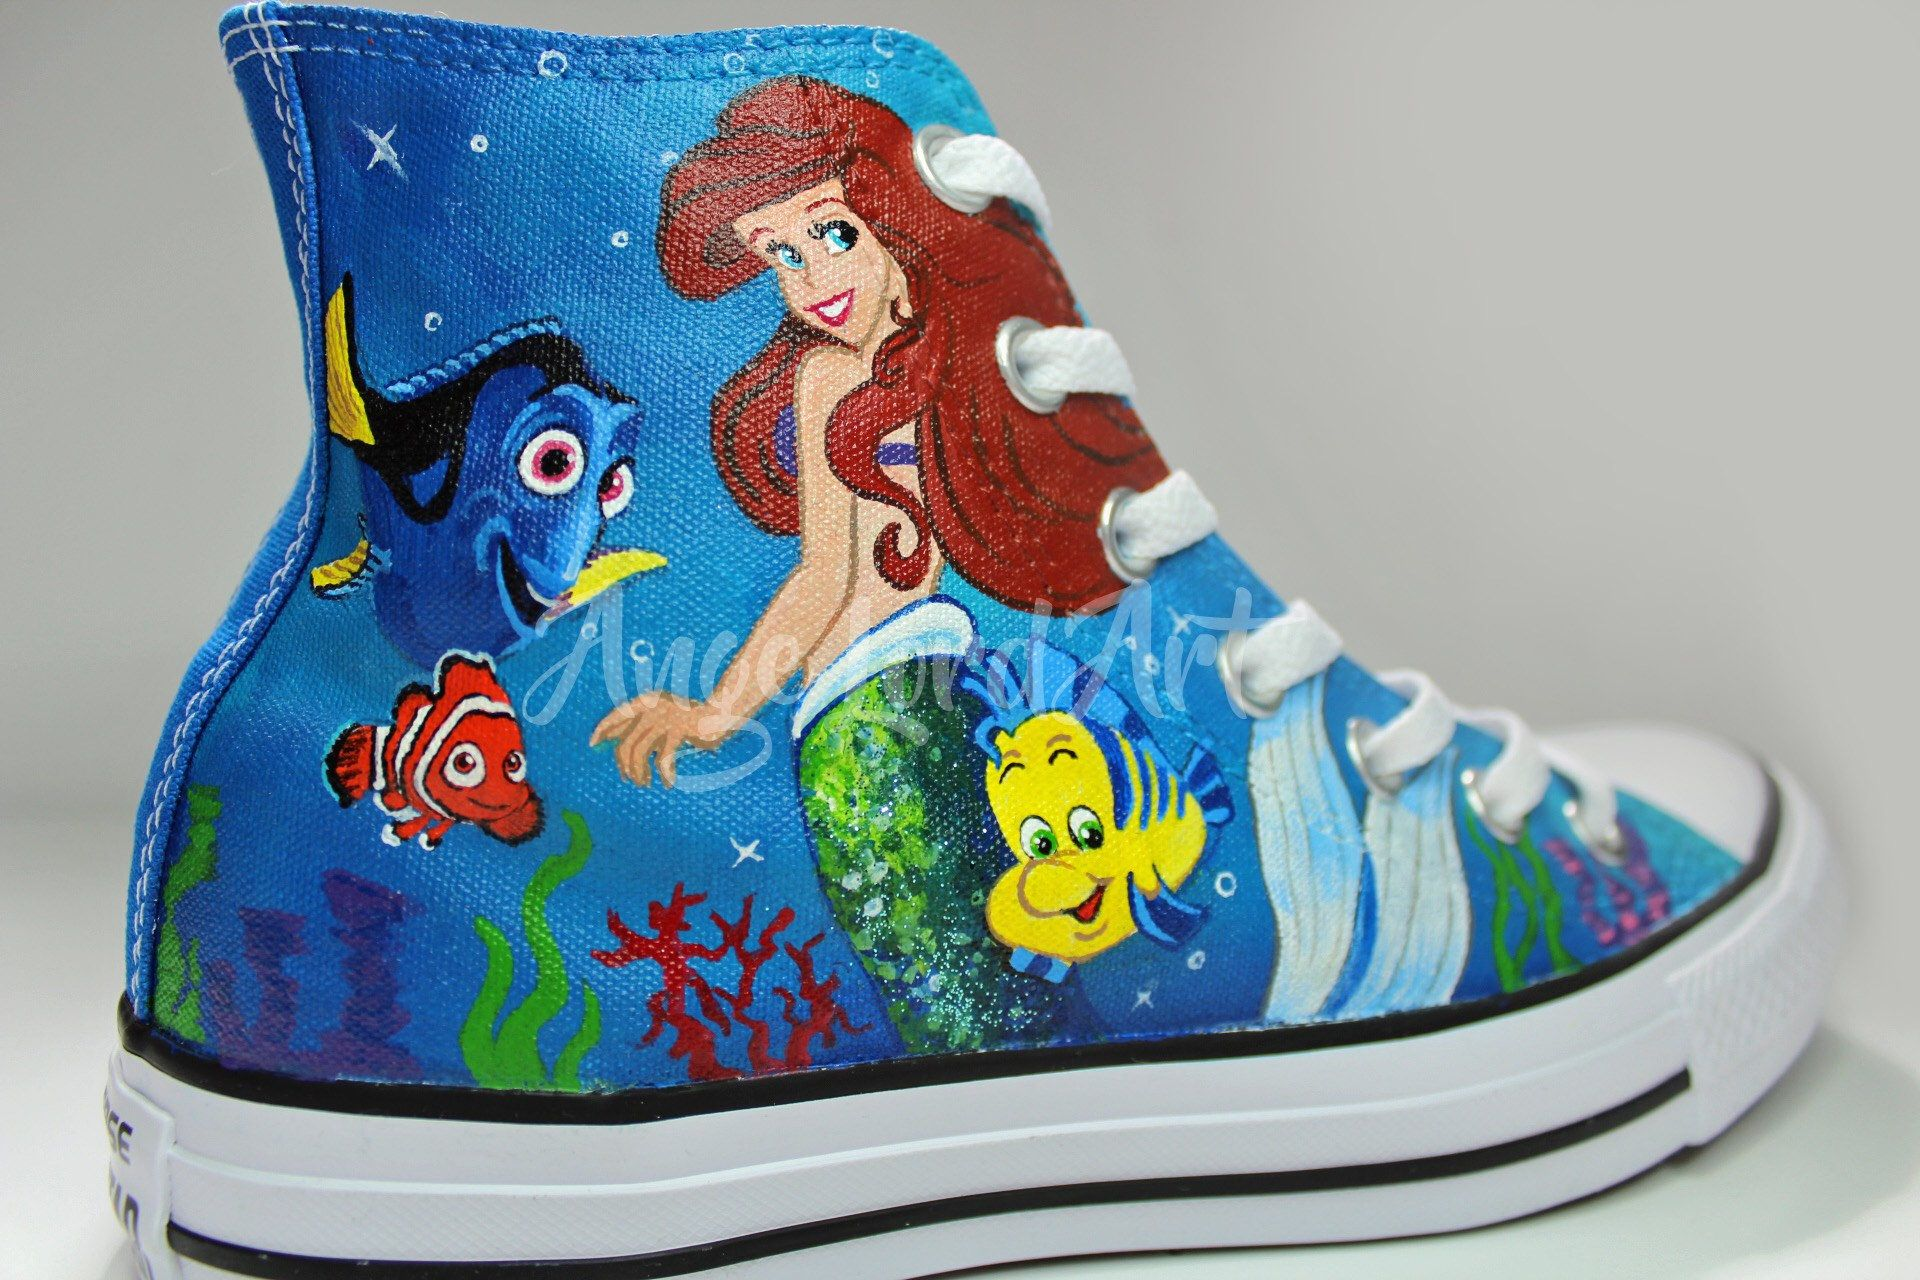 7a2b0bf40578 Custom Painted Disney Inspired Themed Converse Hi Tops shoes sneakers. All  Adult  amp  Children s